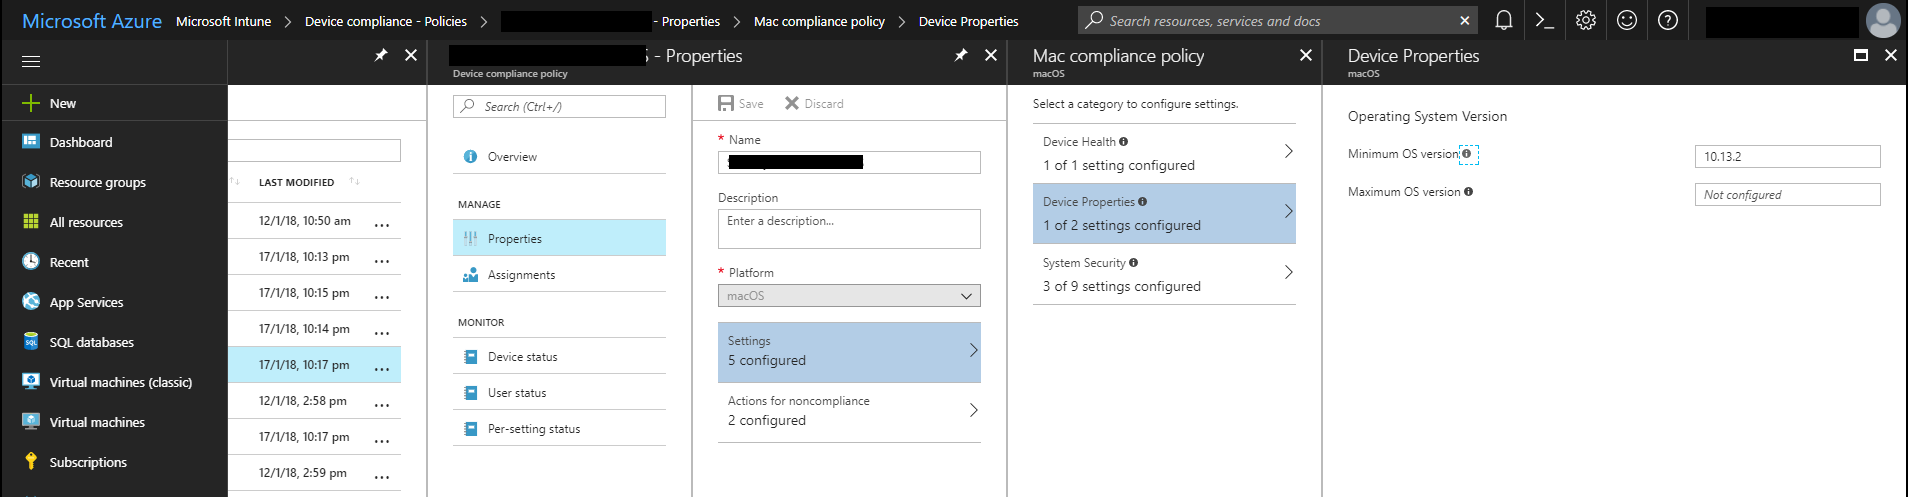 Using Intune and AAD to protect against Spectre and Meltdown